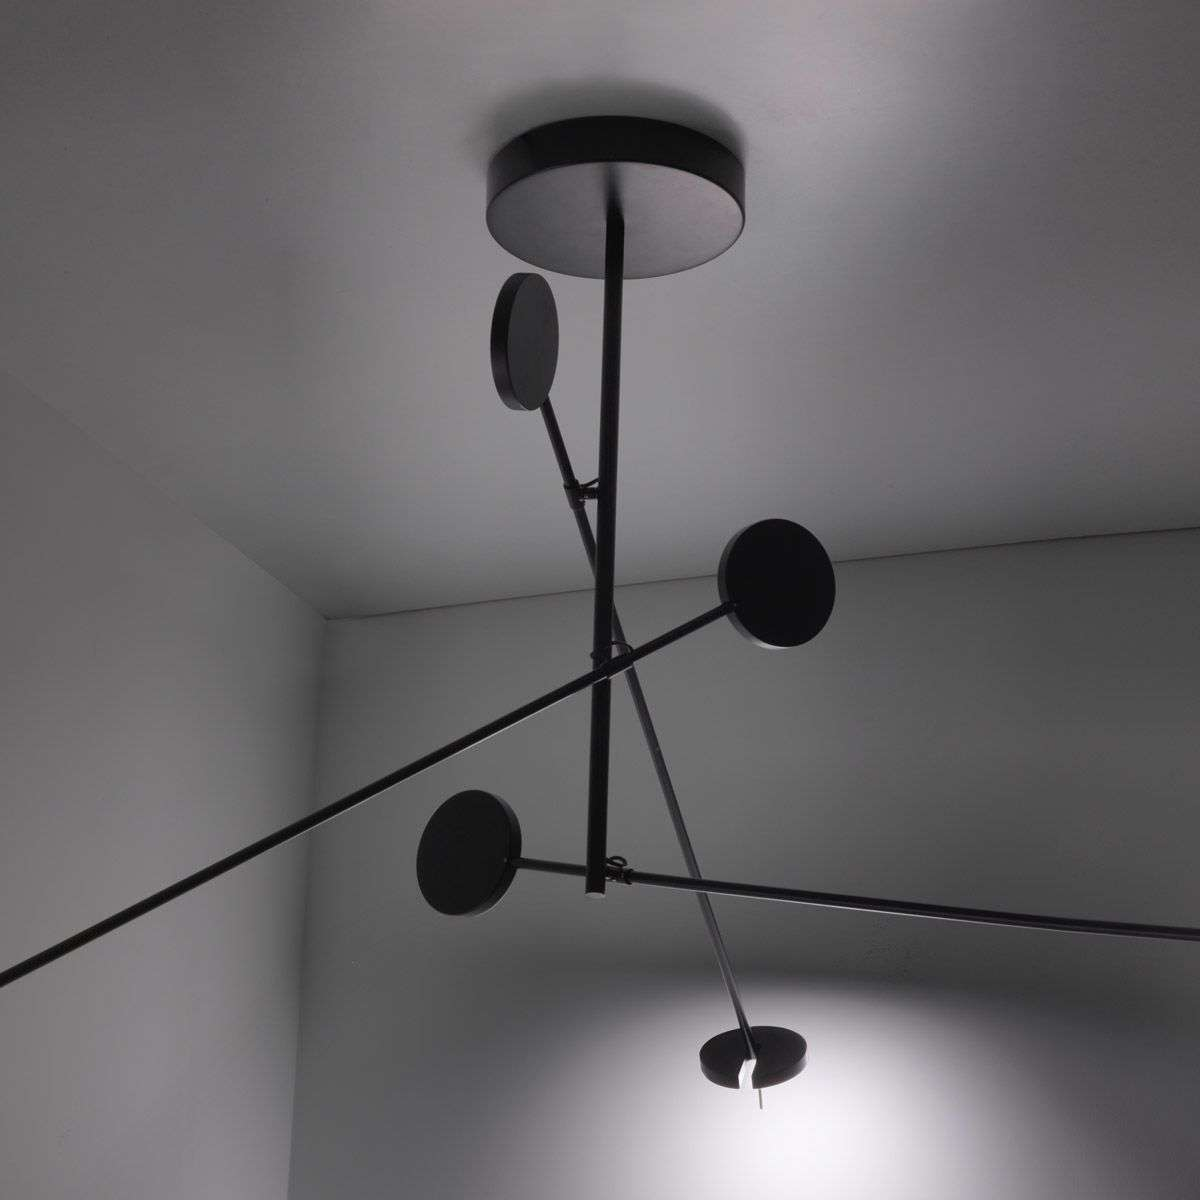 Variabele LED-hanglamp Invisible-6026522-31